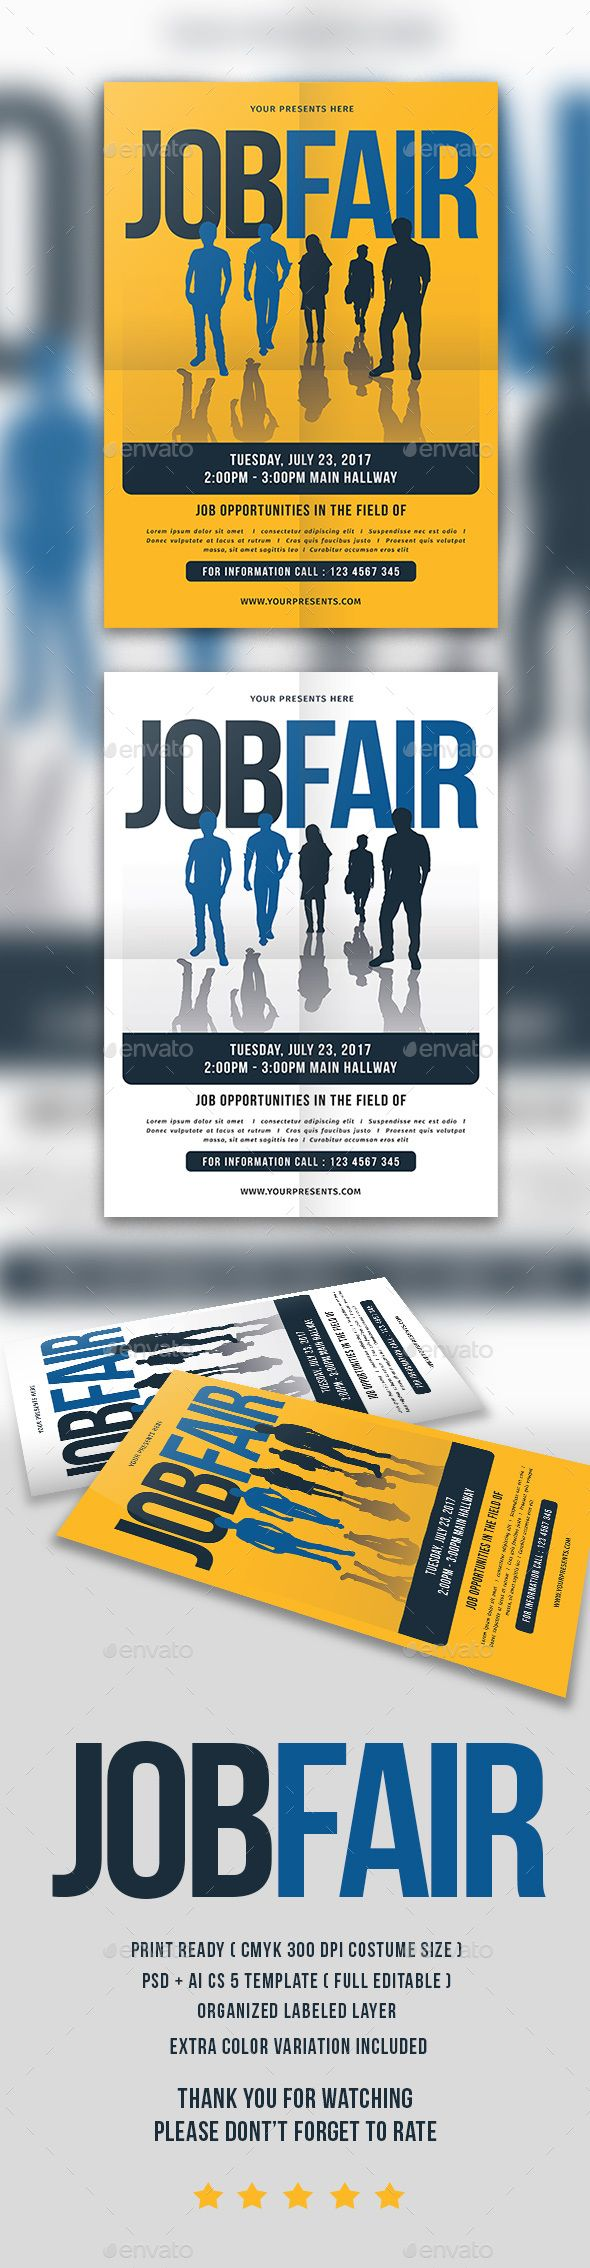 Job Fair Flyer - PSD Template • Only available here ➝ http://graphicriver.net/item/job-fair-flyer/16893810?ref=pxcr